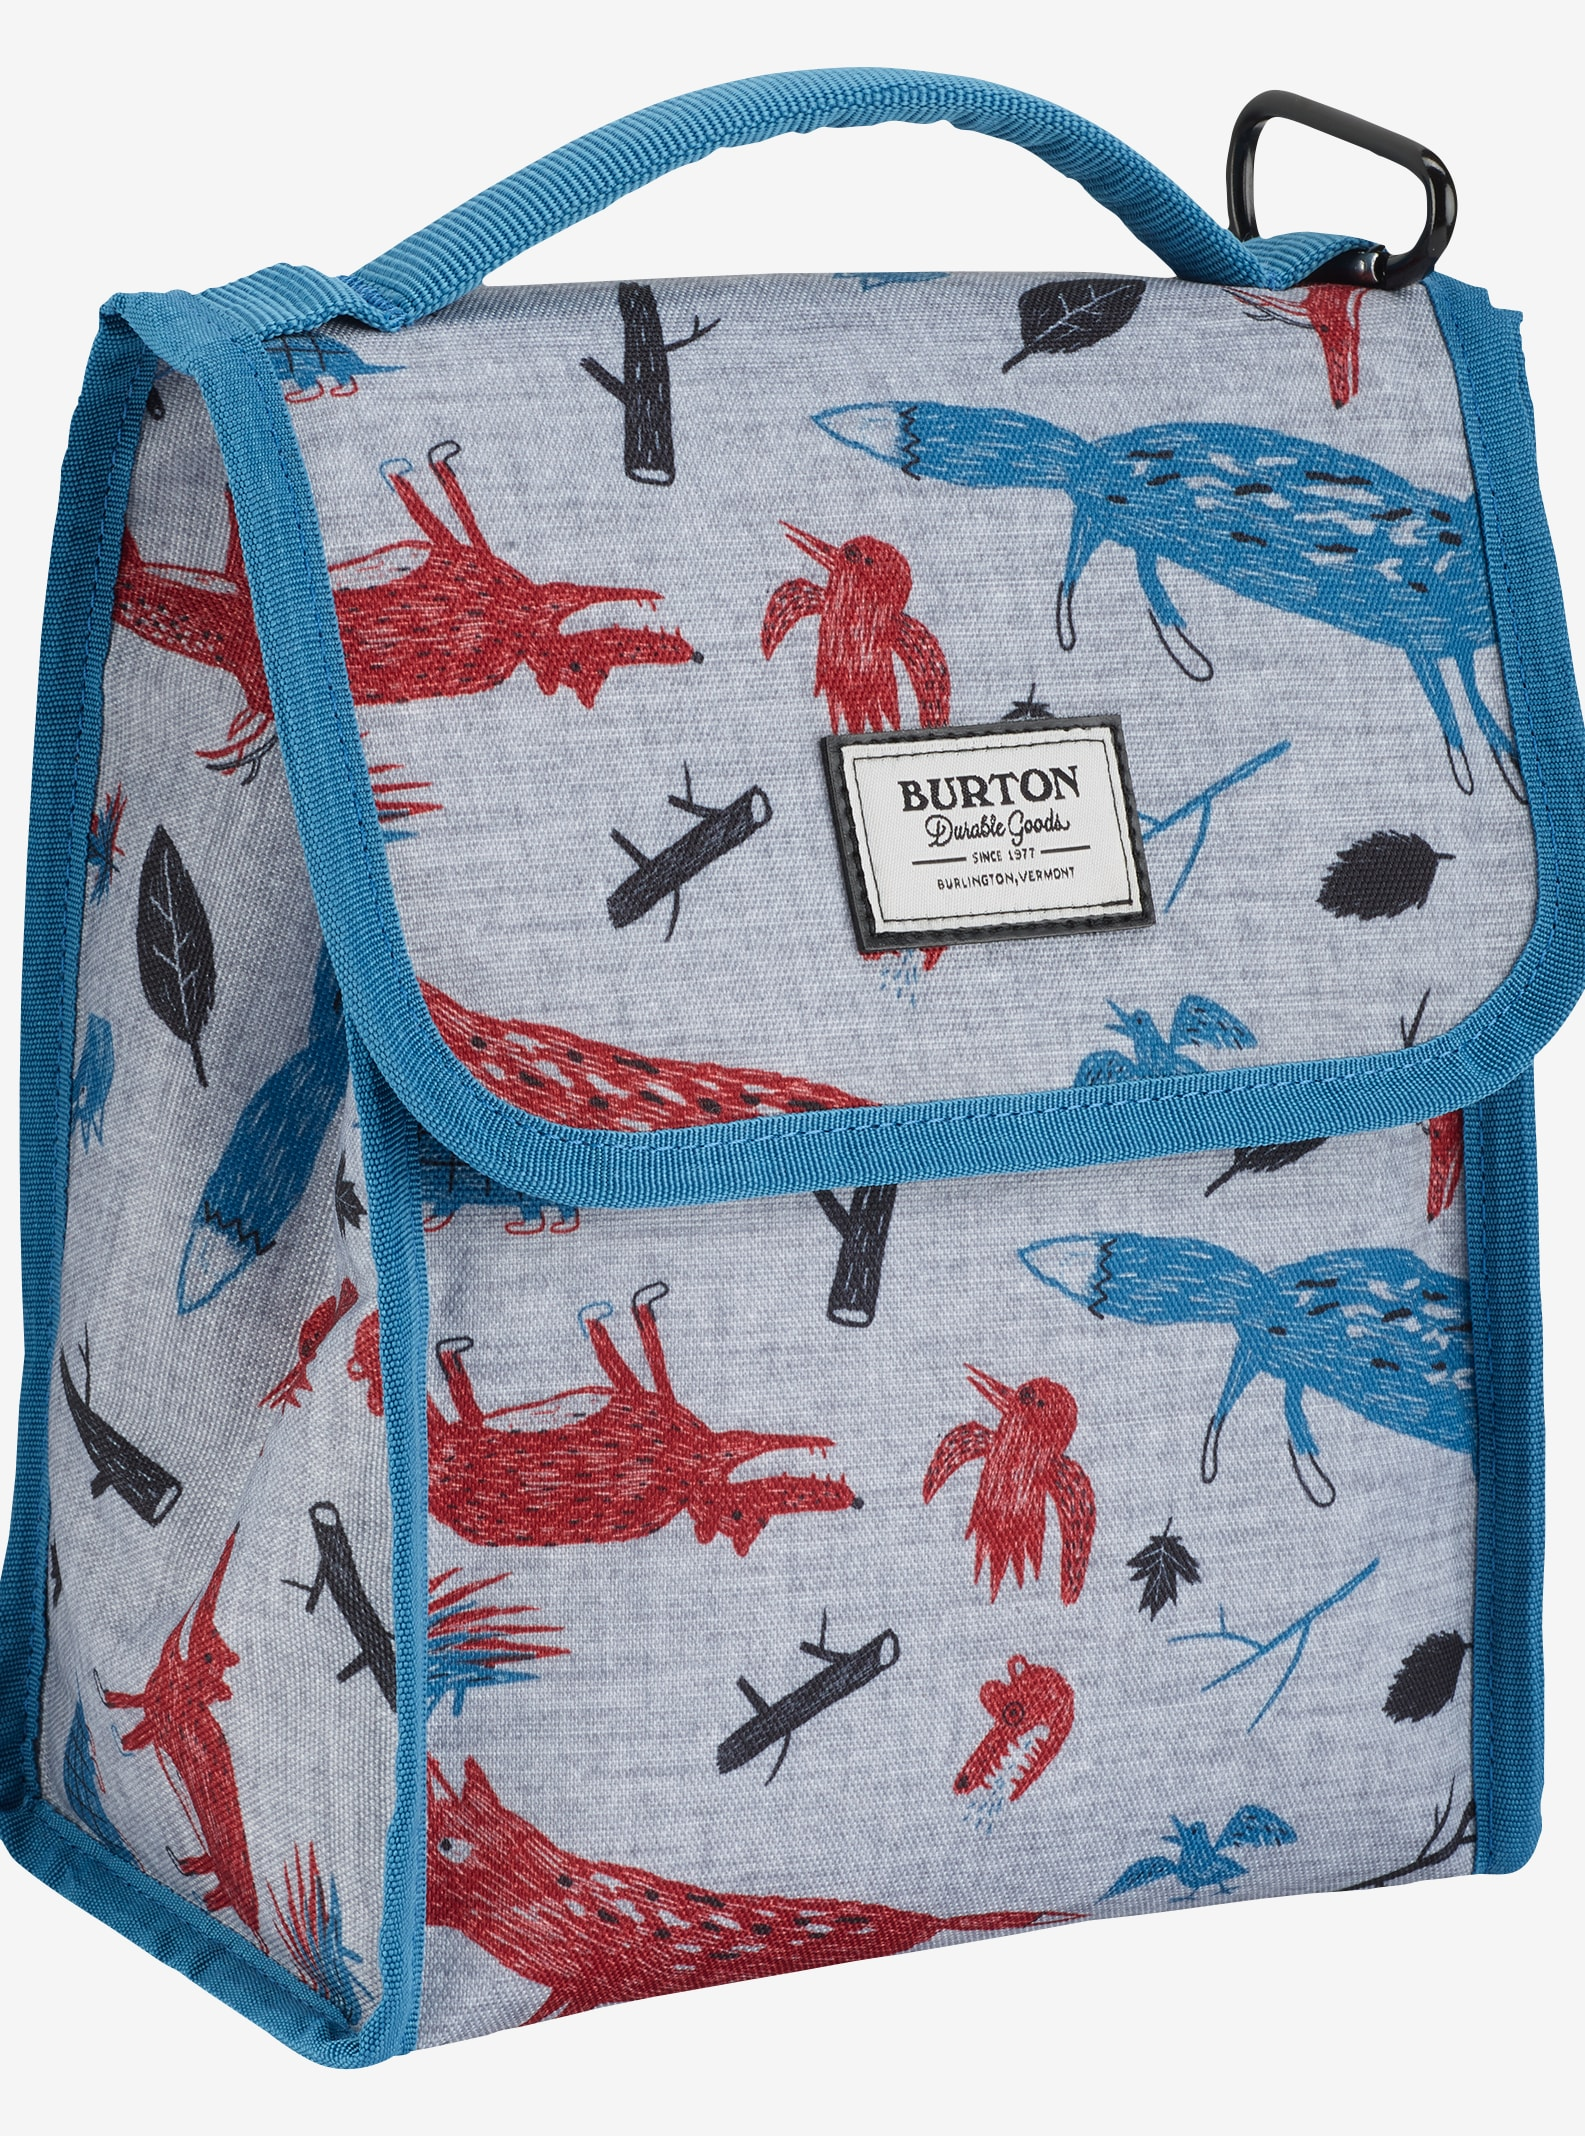 Burton Lunch Sack shown in Big Bad Wolf Print